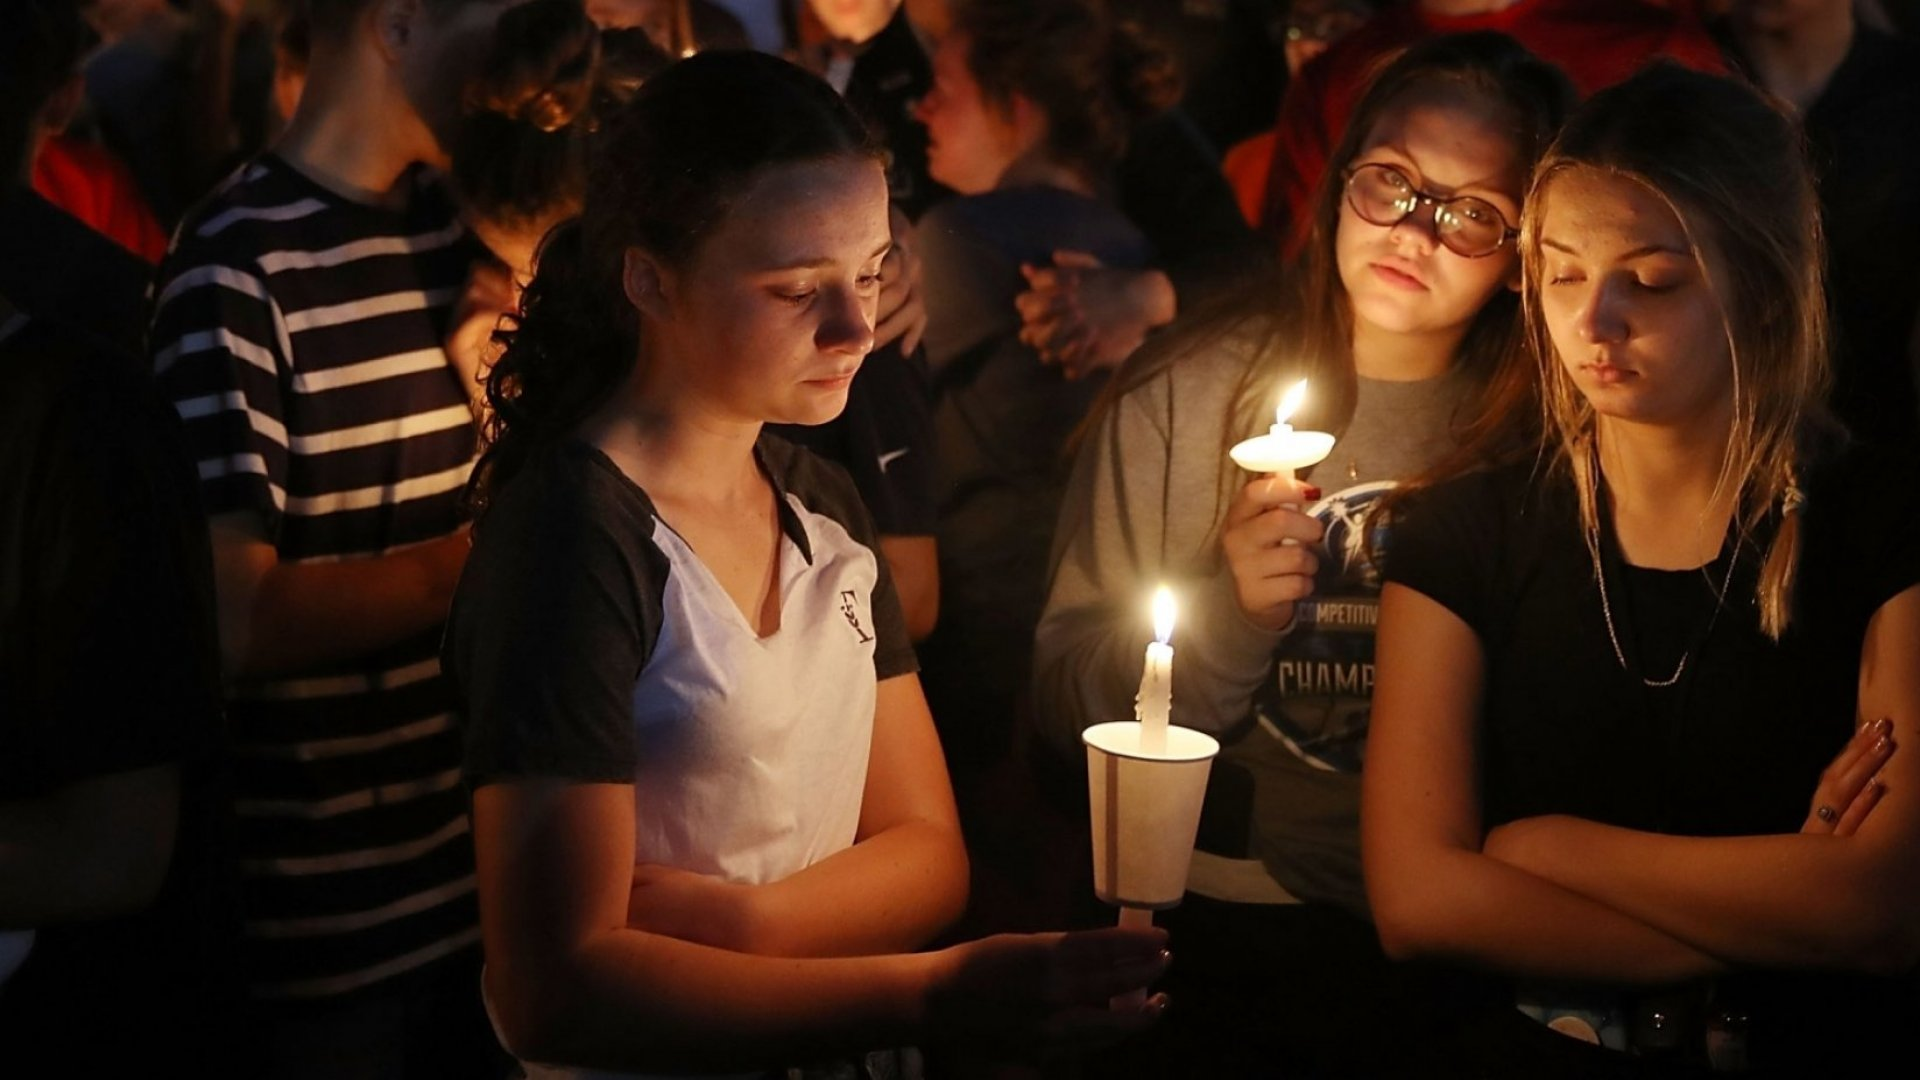 In America, school shootings happen with frightening regularity. Now, an entire industry of bulletproof products and emergency response tools has been created.